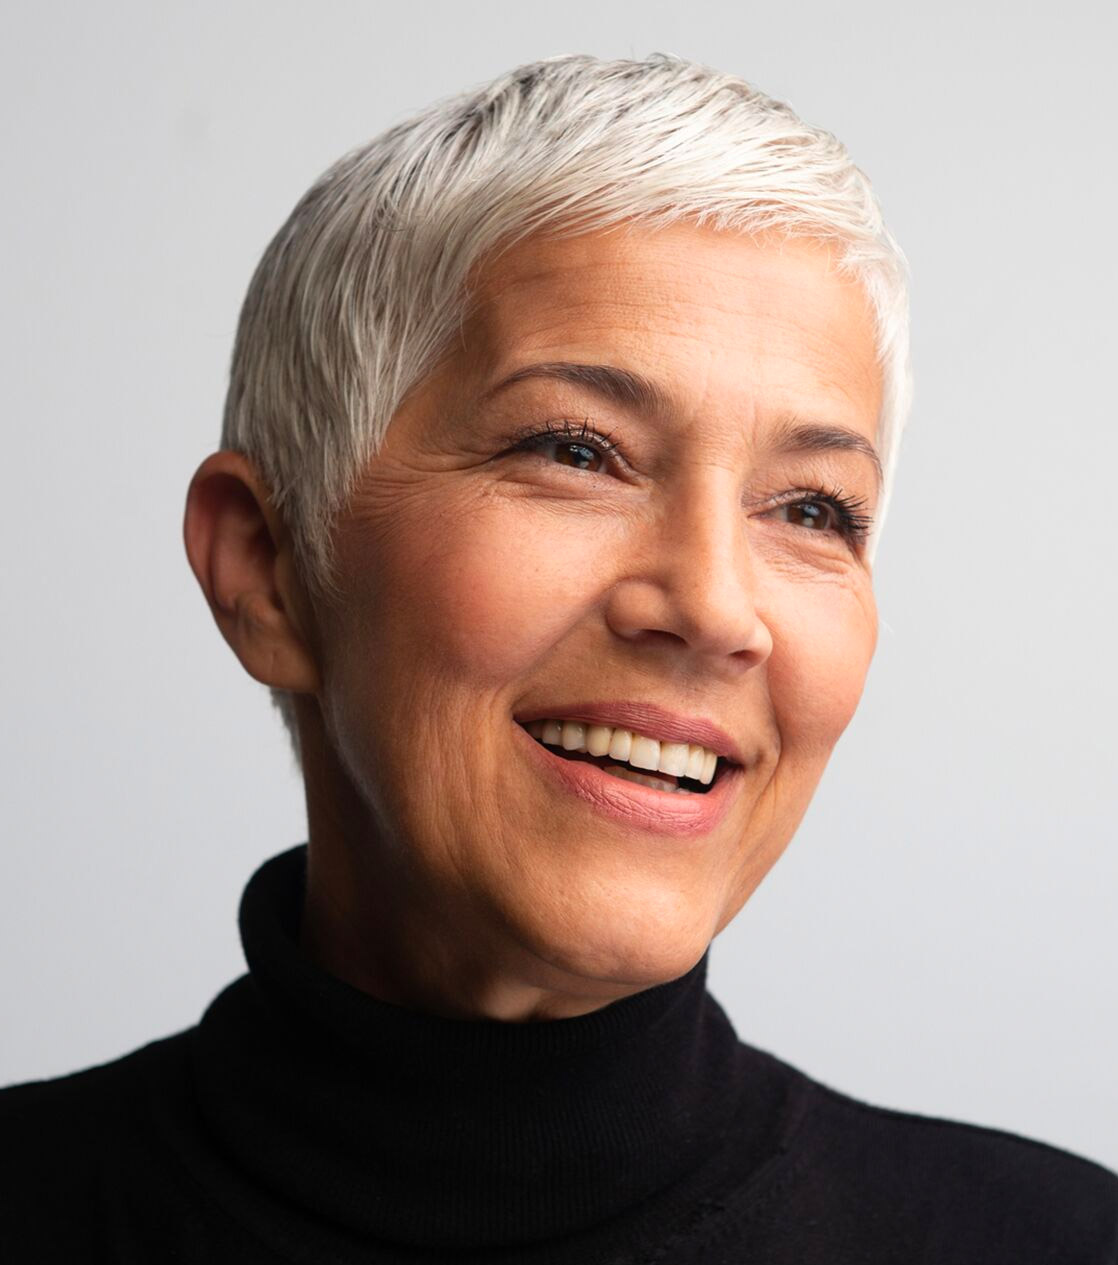 older woman with short hair smiling